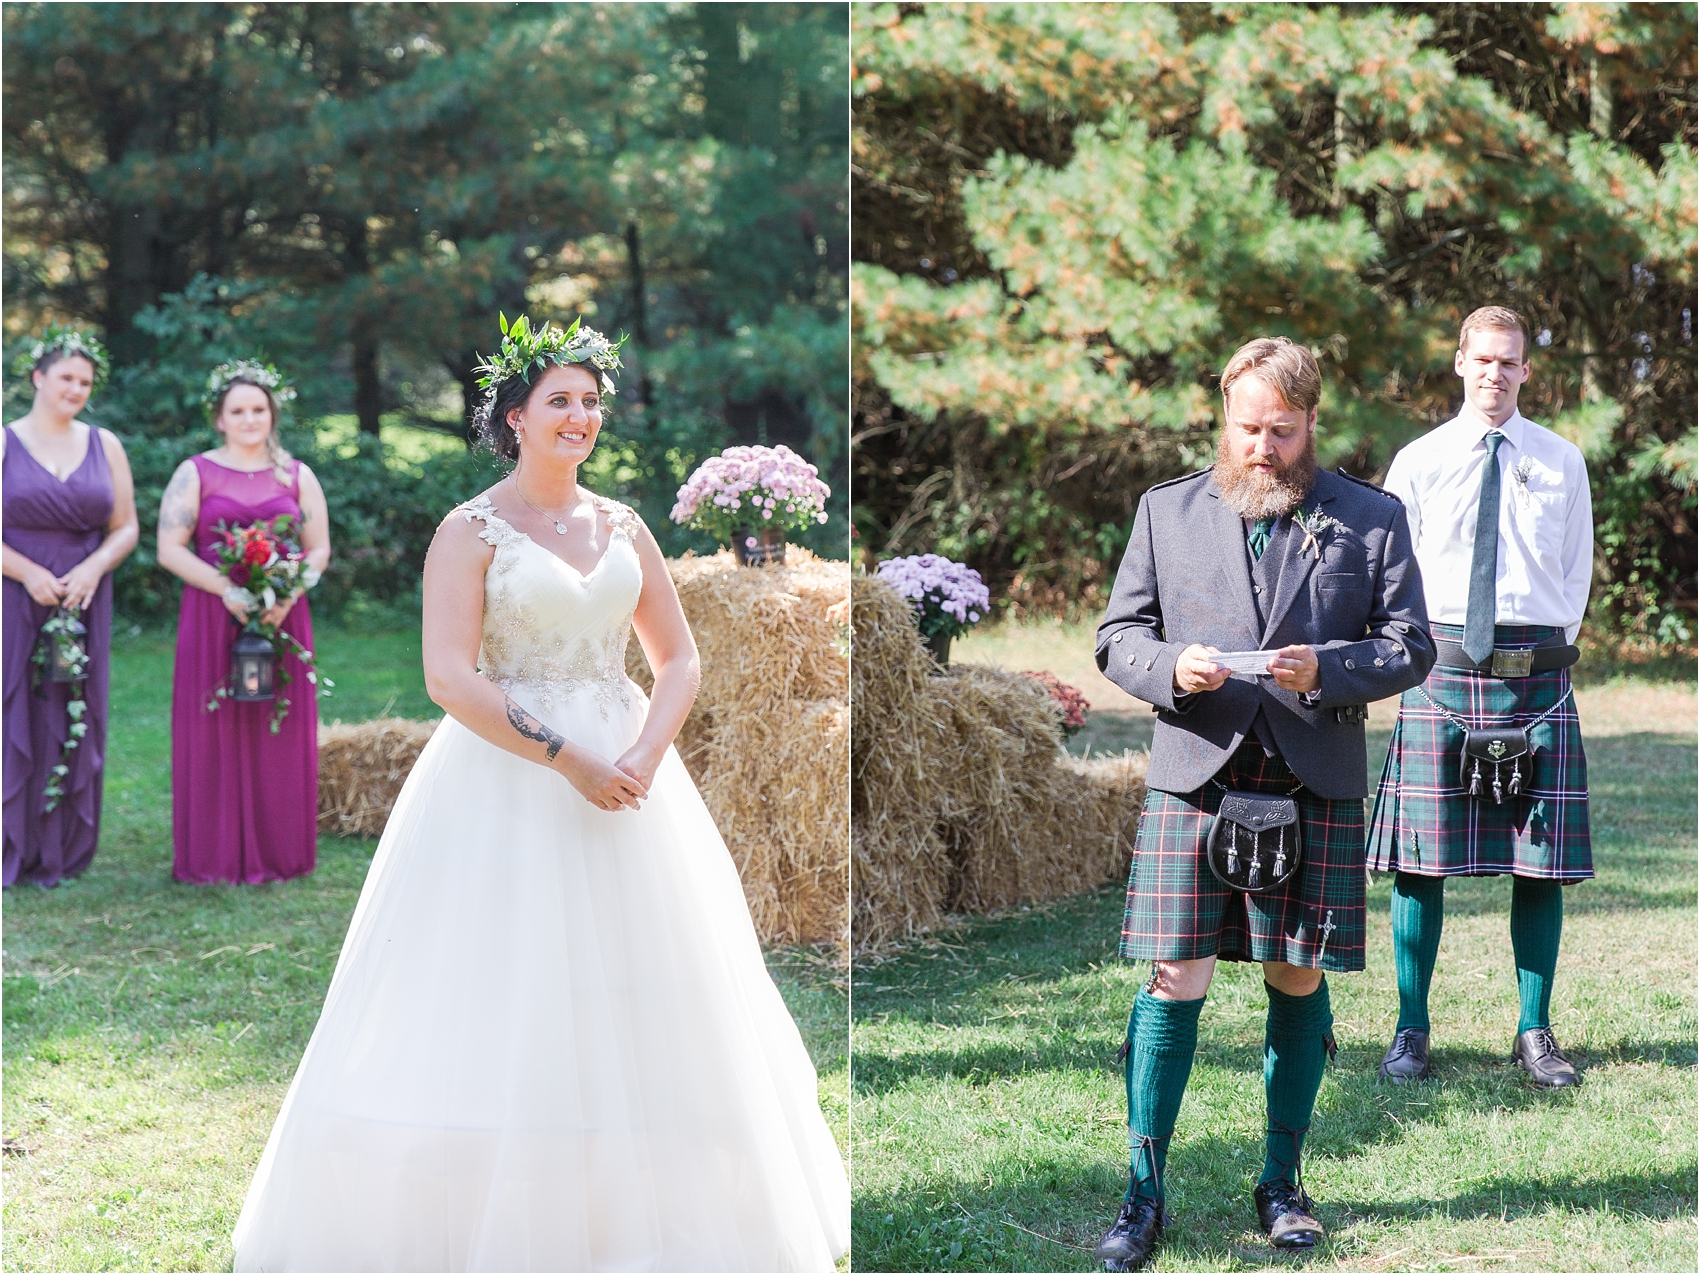 scottish-inspired-wedding-photos-in-the-country-in-port-sanilac-michigan-by-courtney-carolyn-photography_0021.jpg